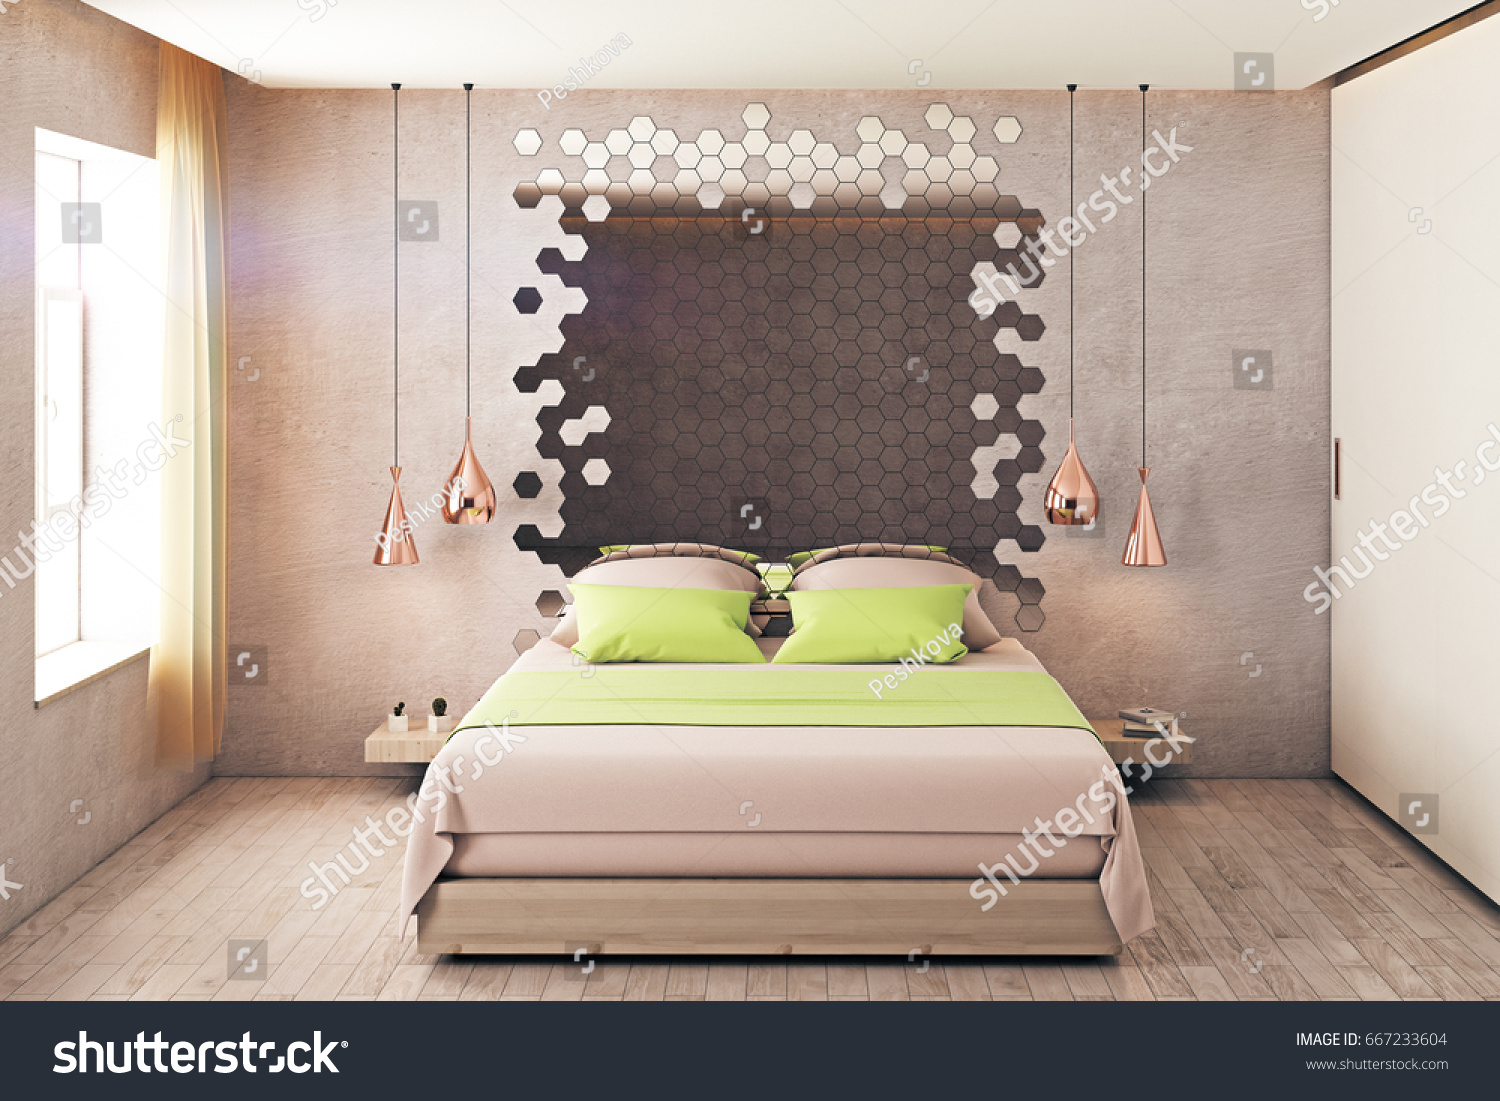 Hipster Bedroom Interior With Furniture, Hexagonal Mirror And Window With  Sunlight. 3D Rendering